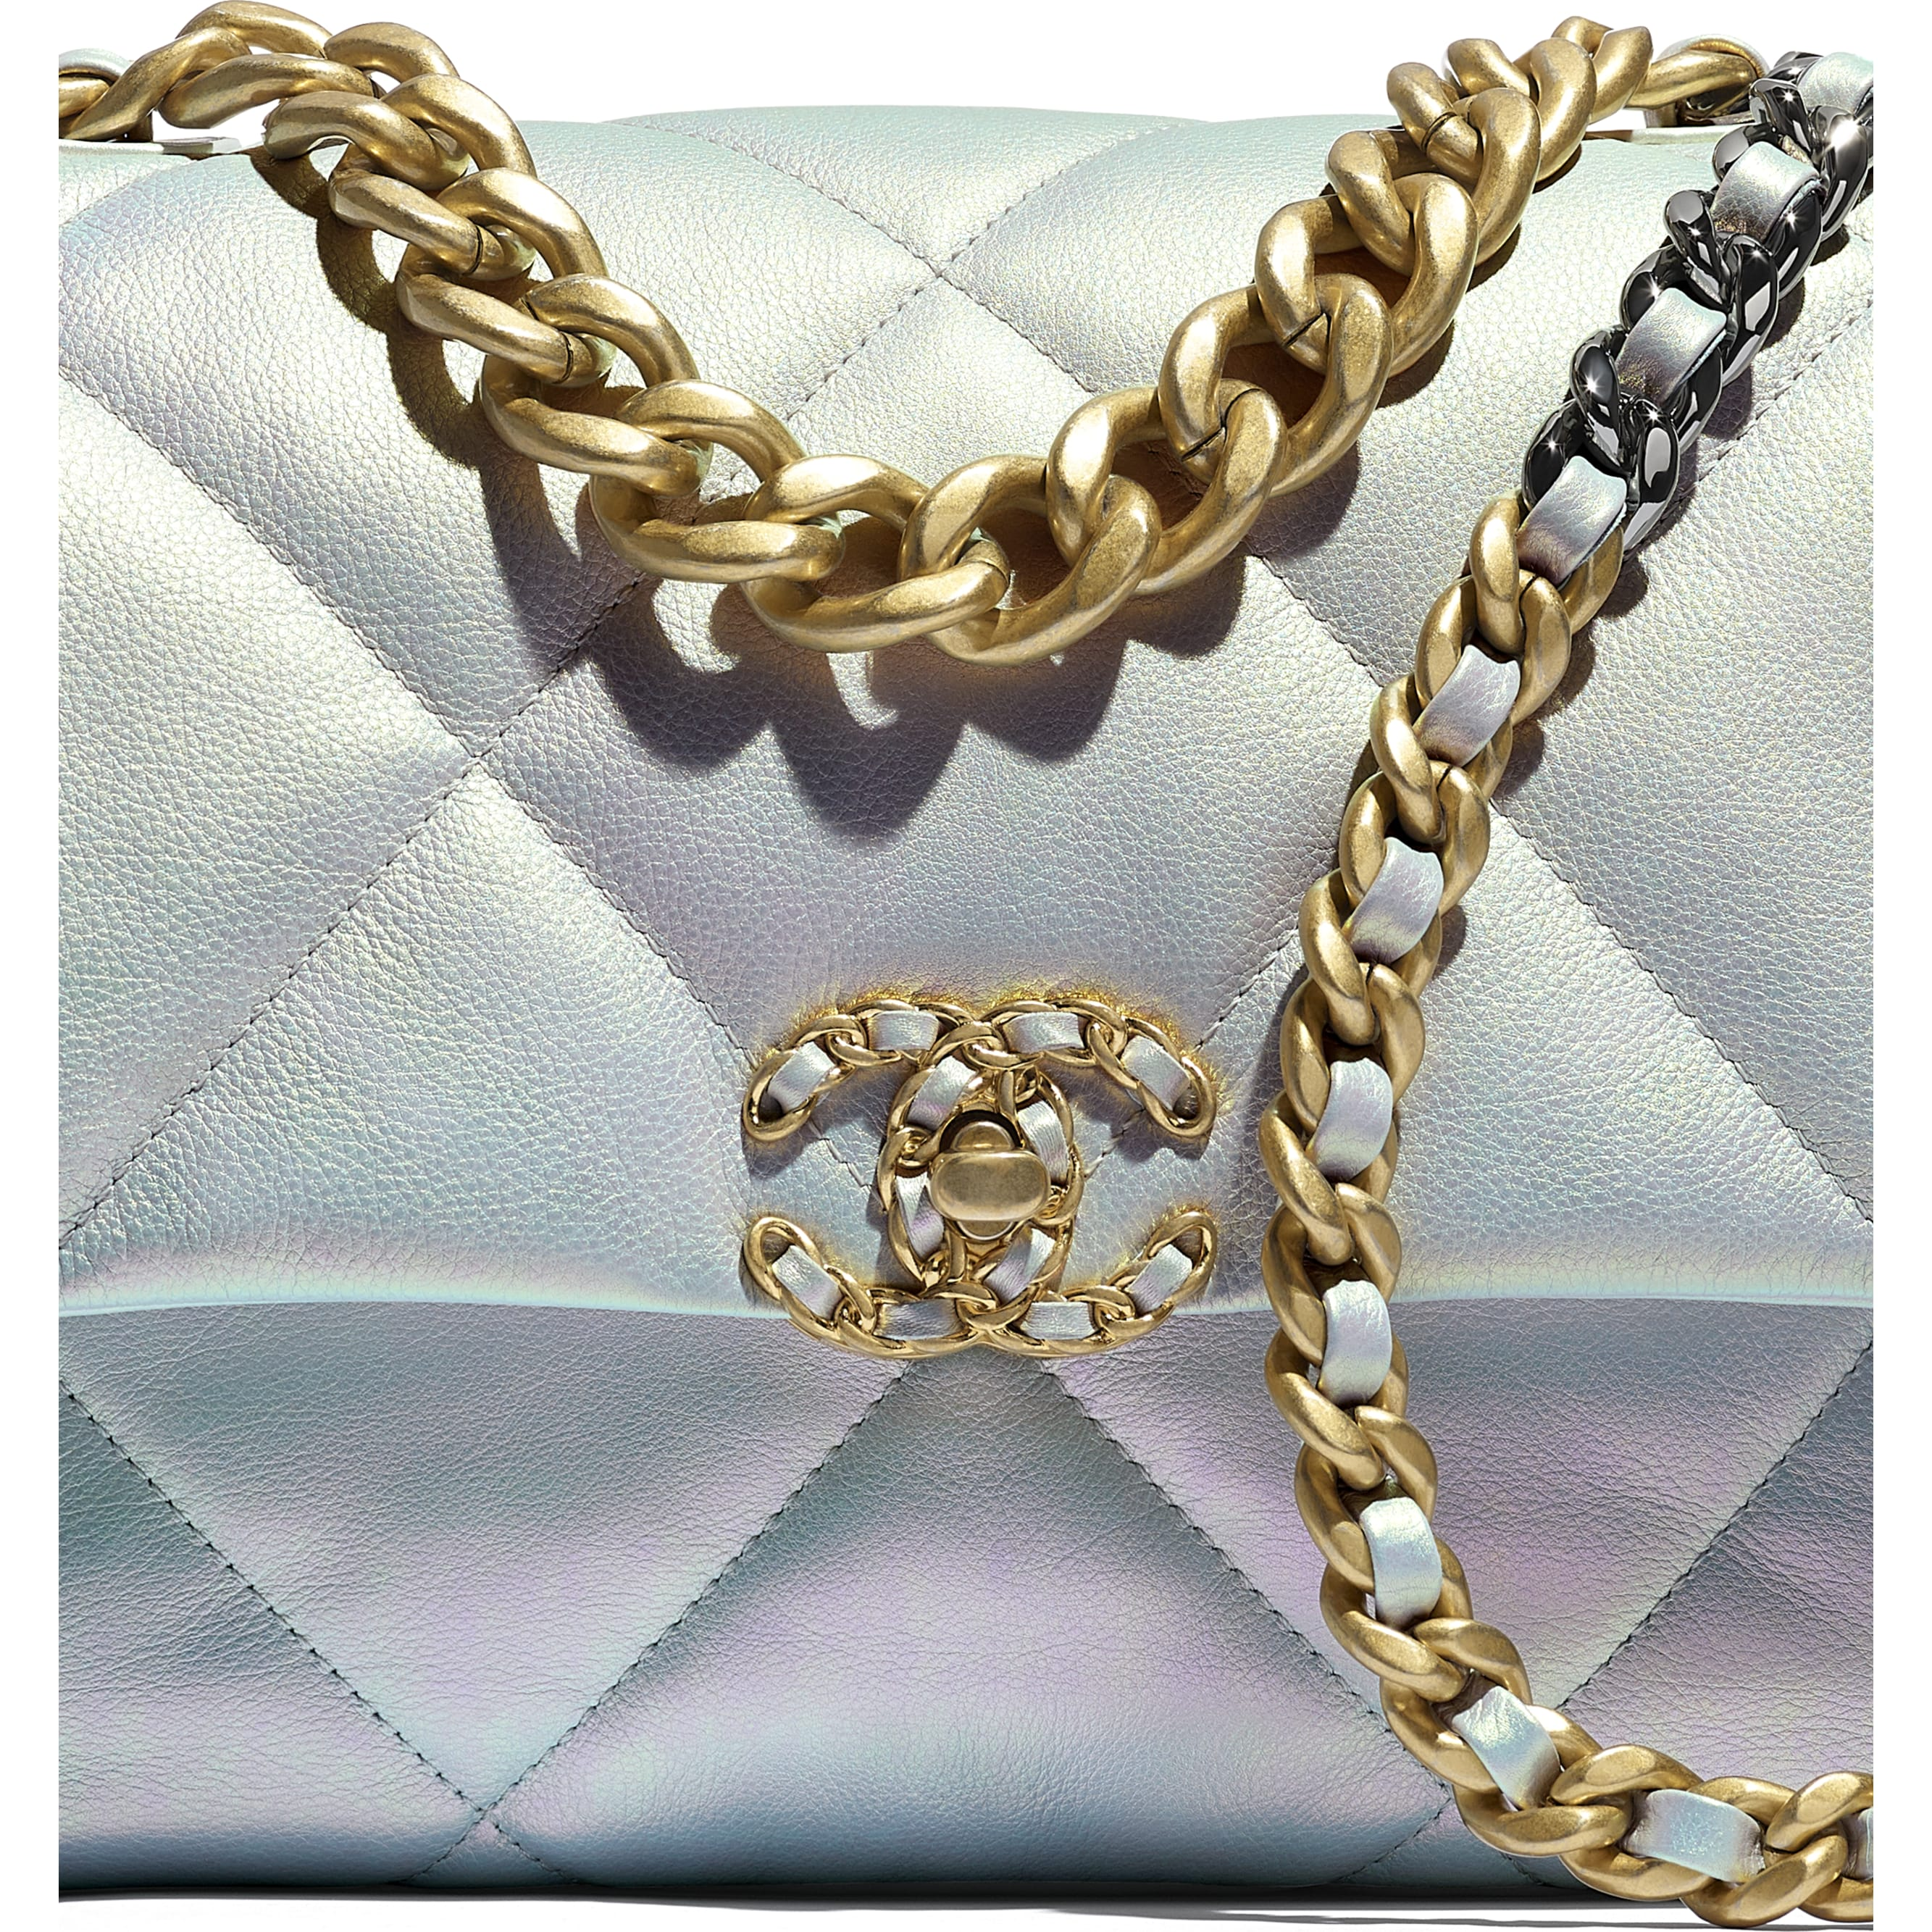 CHANEL 19 Large Flap Bag - White - Iridescent Calfskin, Gold-Tone, Silver-Tone & Ruthenium-Finish Metal - CHANEL - Extra view - see standard sized version